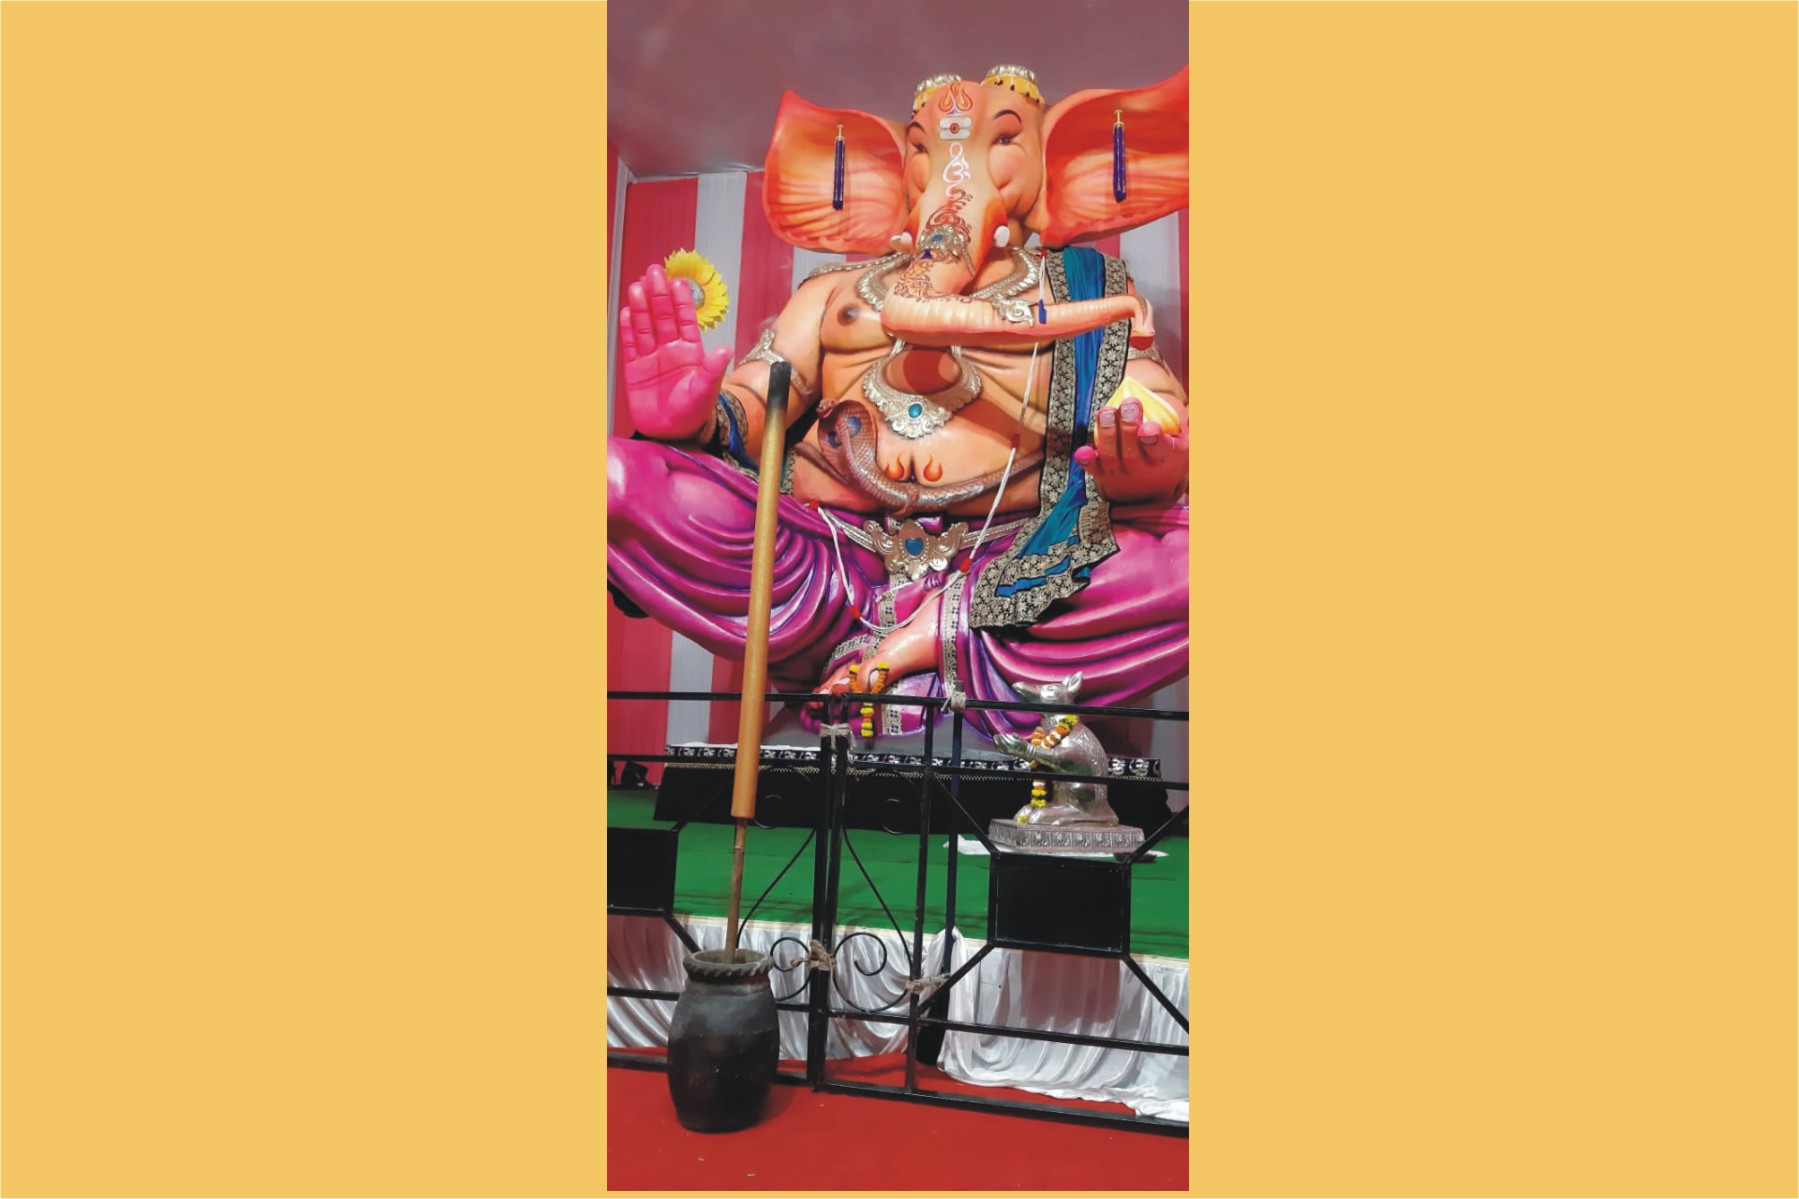 Zed Black Celebrates Ganeshotsav In Mumbai By Donating  6 Ft Mega Agarbattis For Taller Ganesha Idols